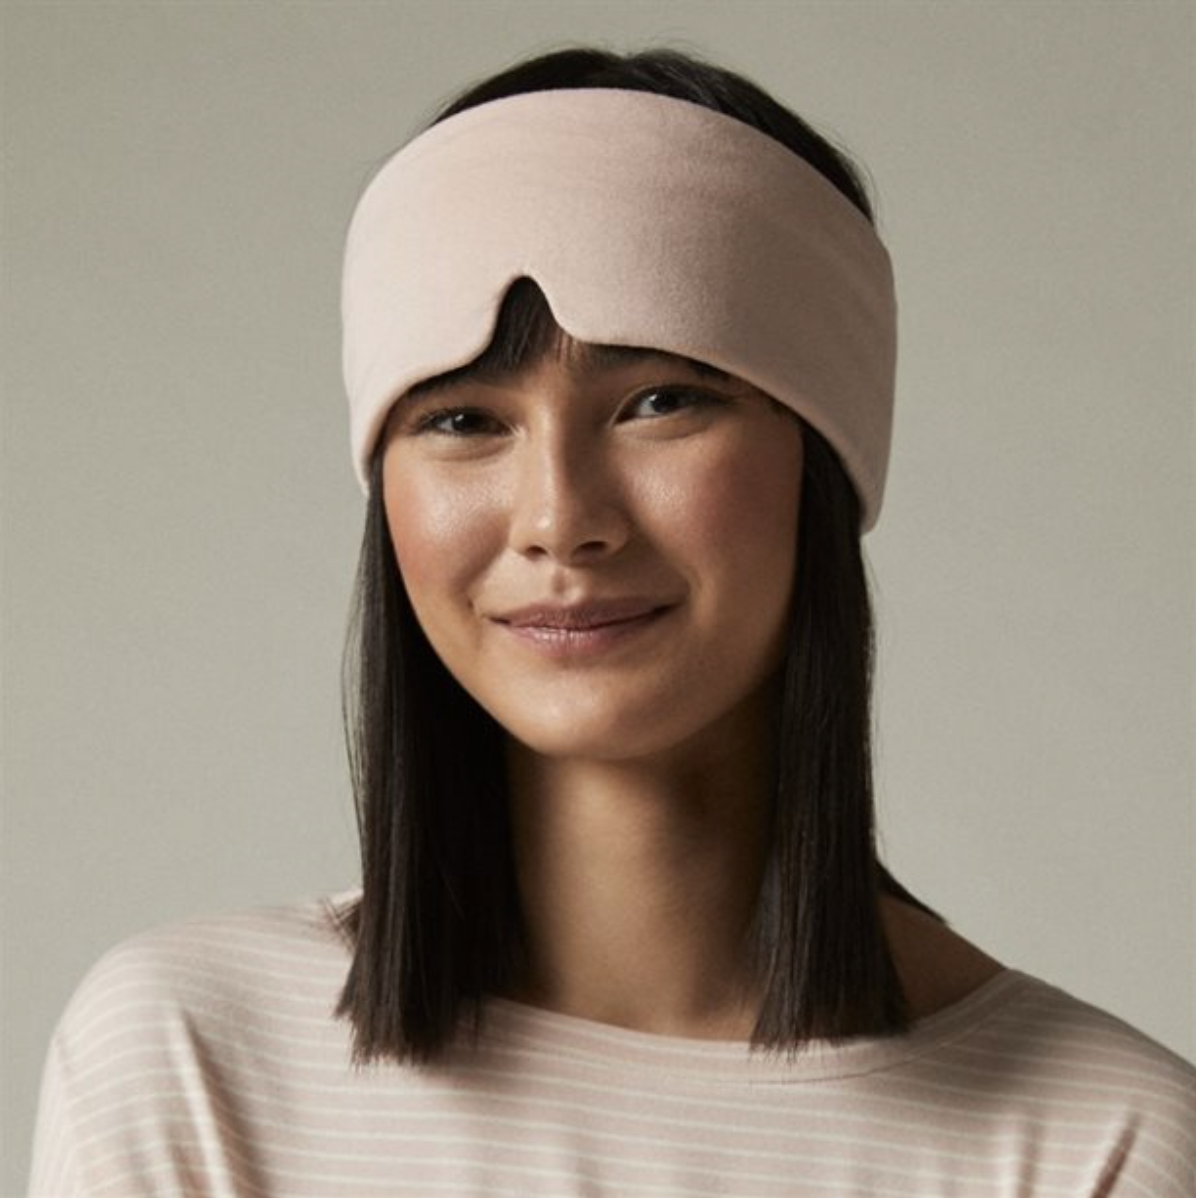 person with the sleep mask on their head